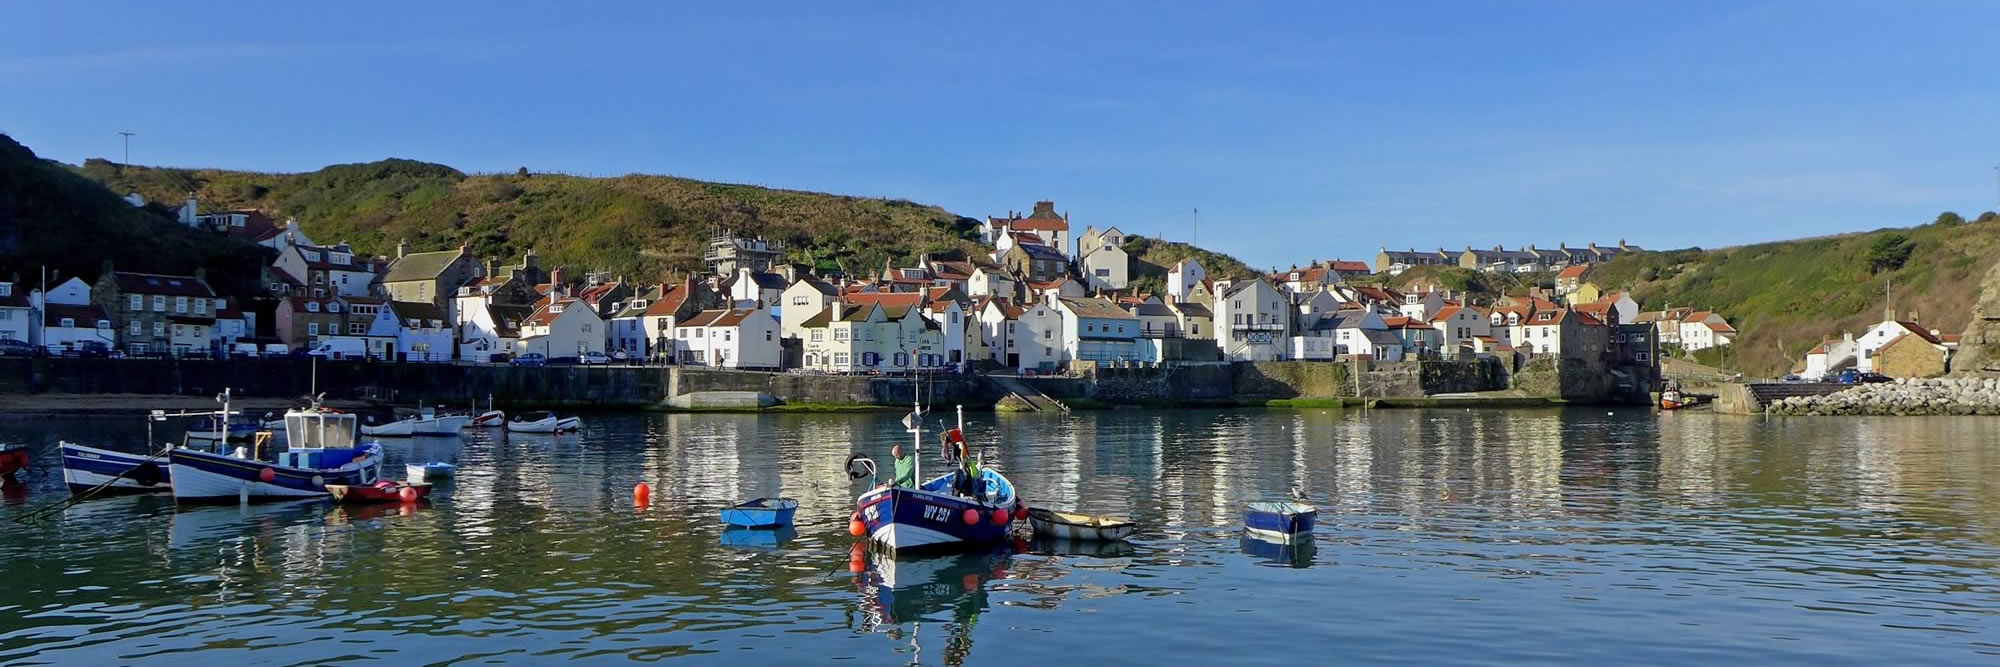 Fishing boats and harbour cottages under a clear blue sky